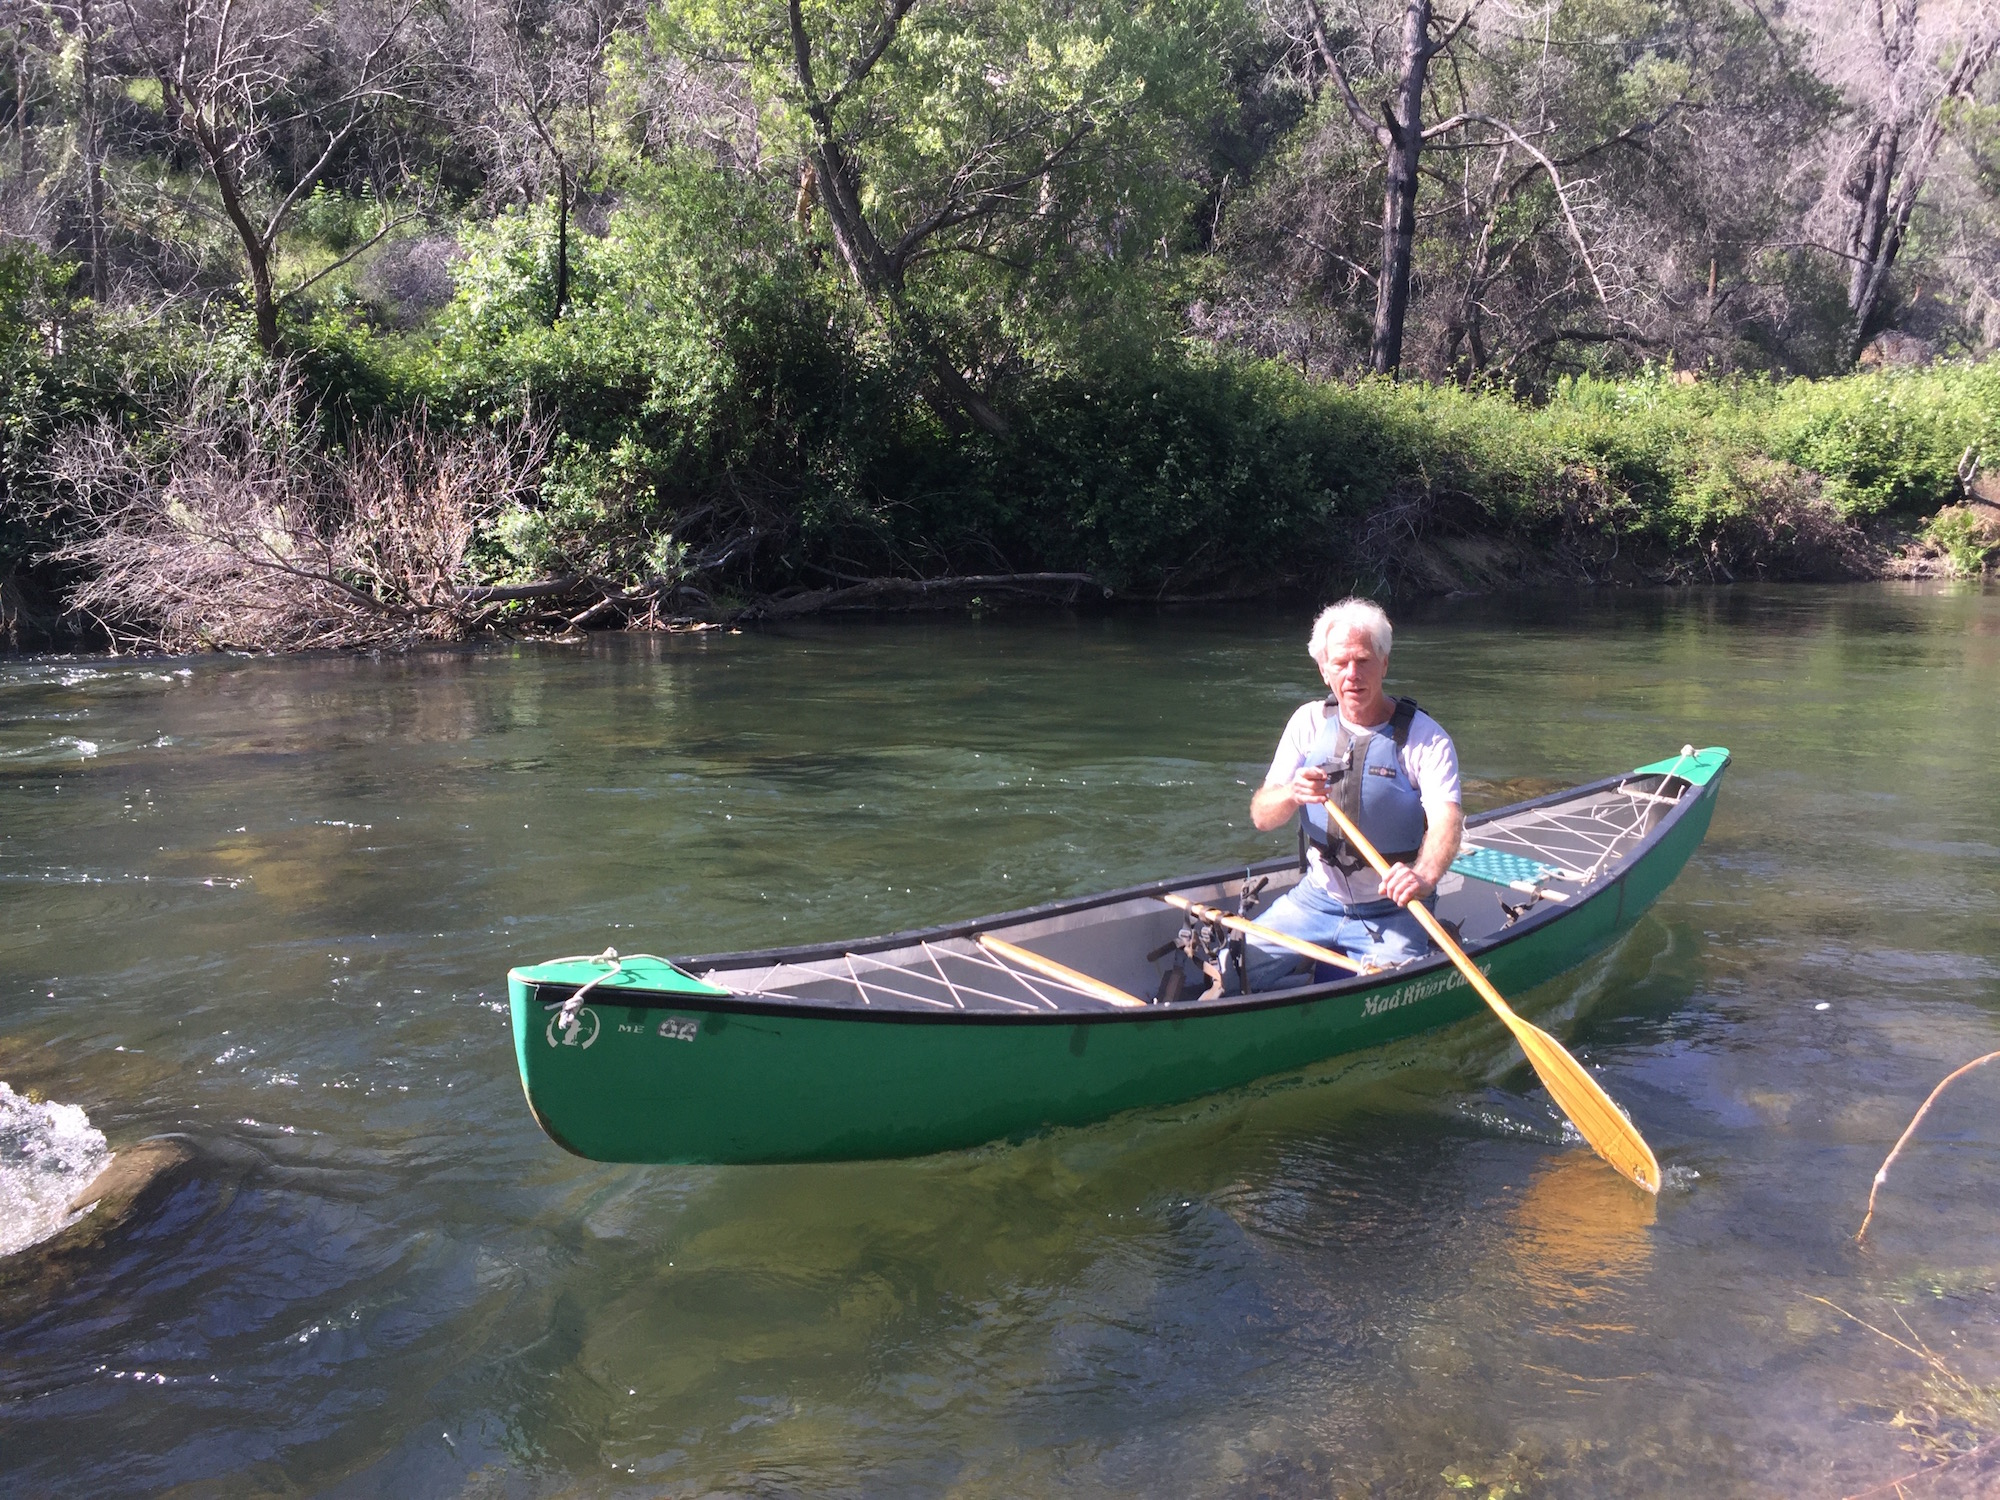 Photo: Tim Palmer paddling on Putah Creek, May 2018